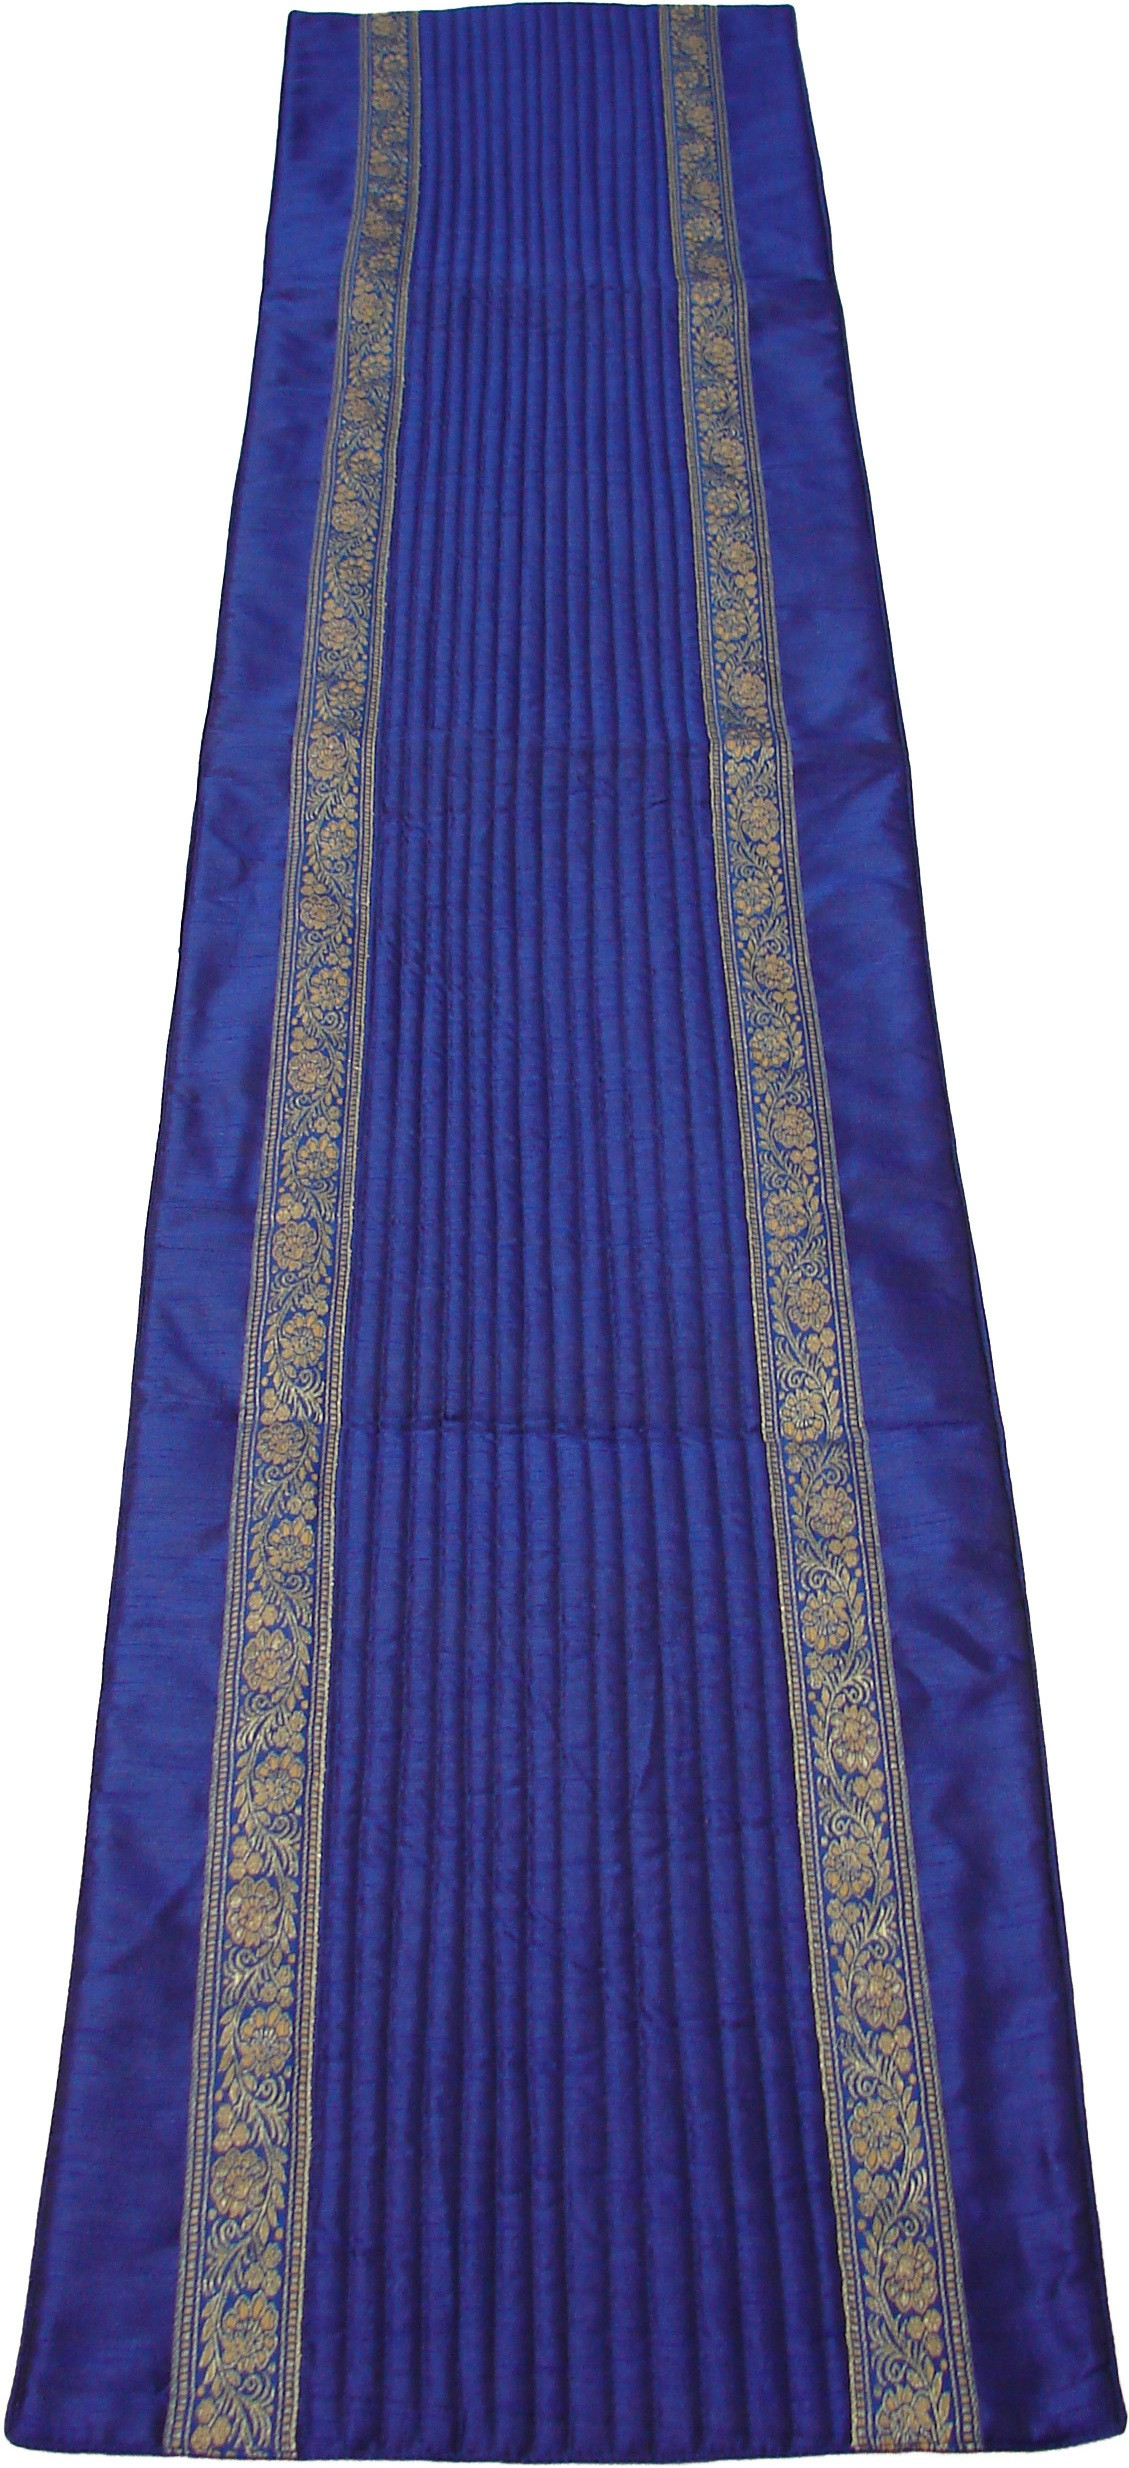 Home Shine Blue 90 cm Table Runner